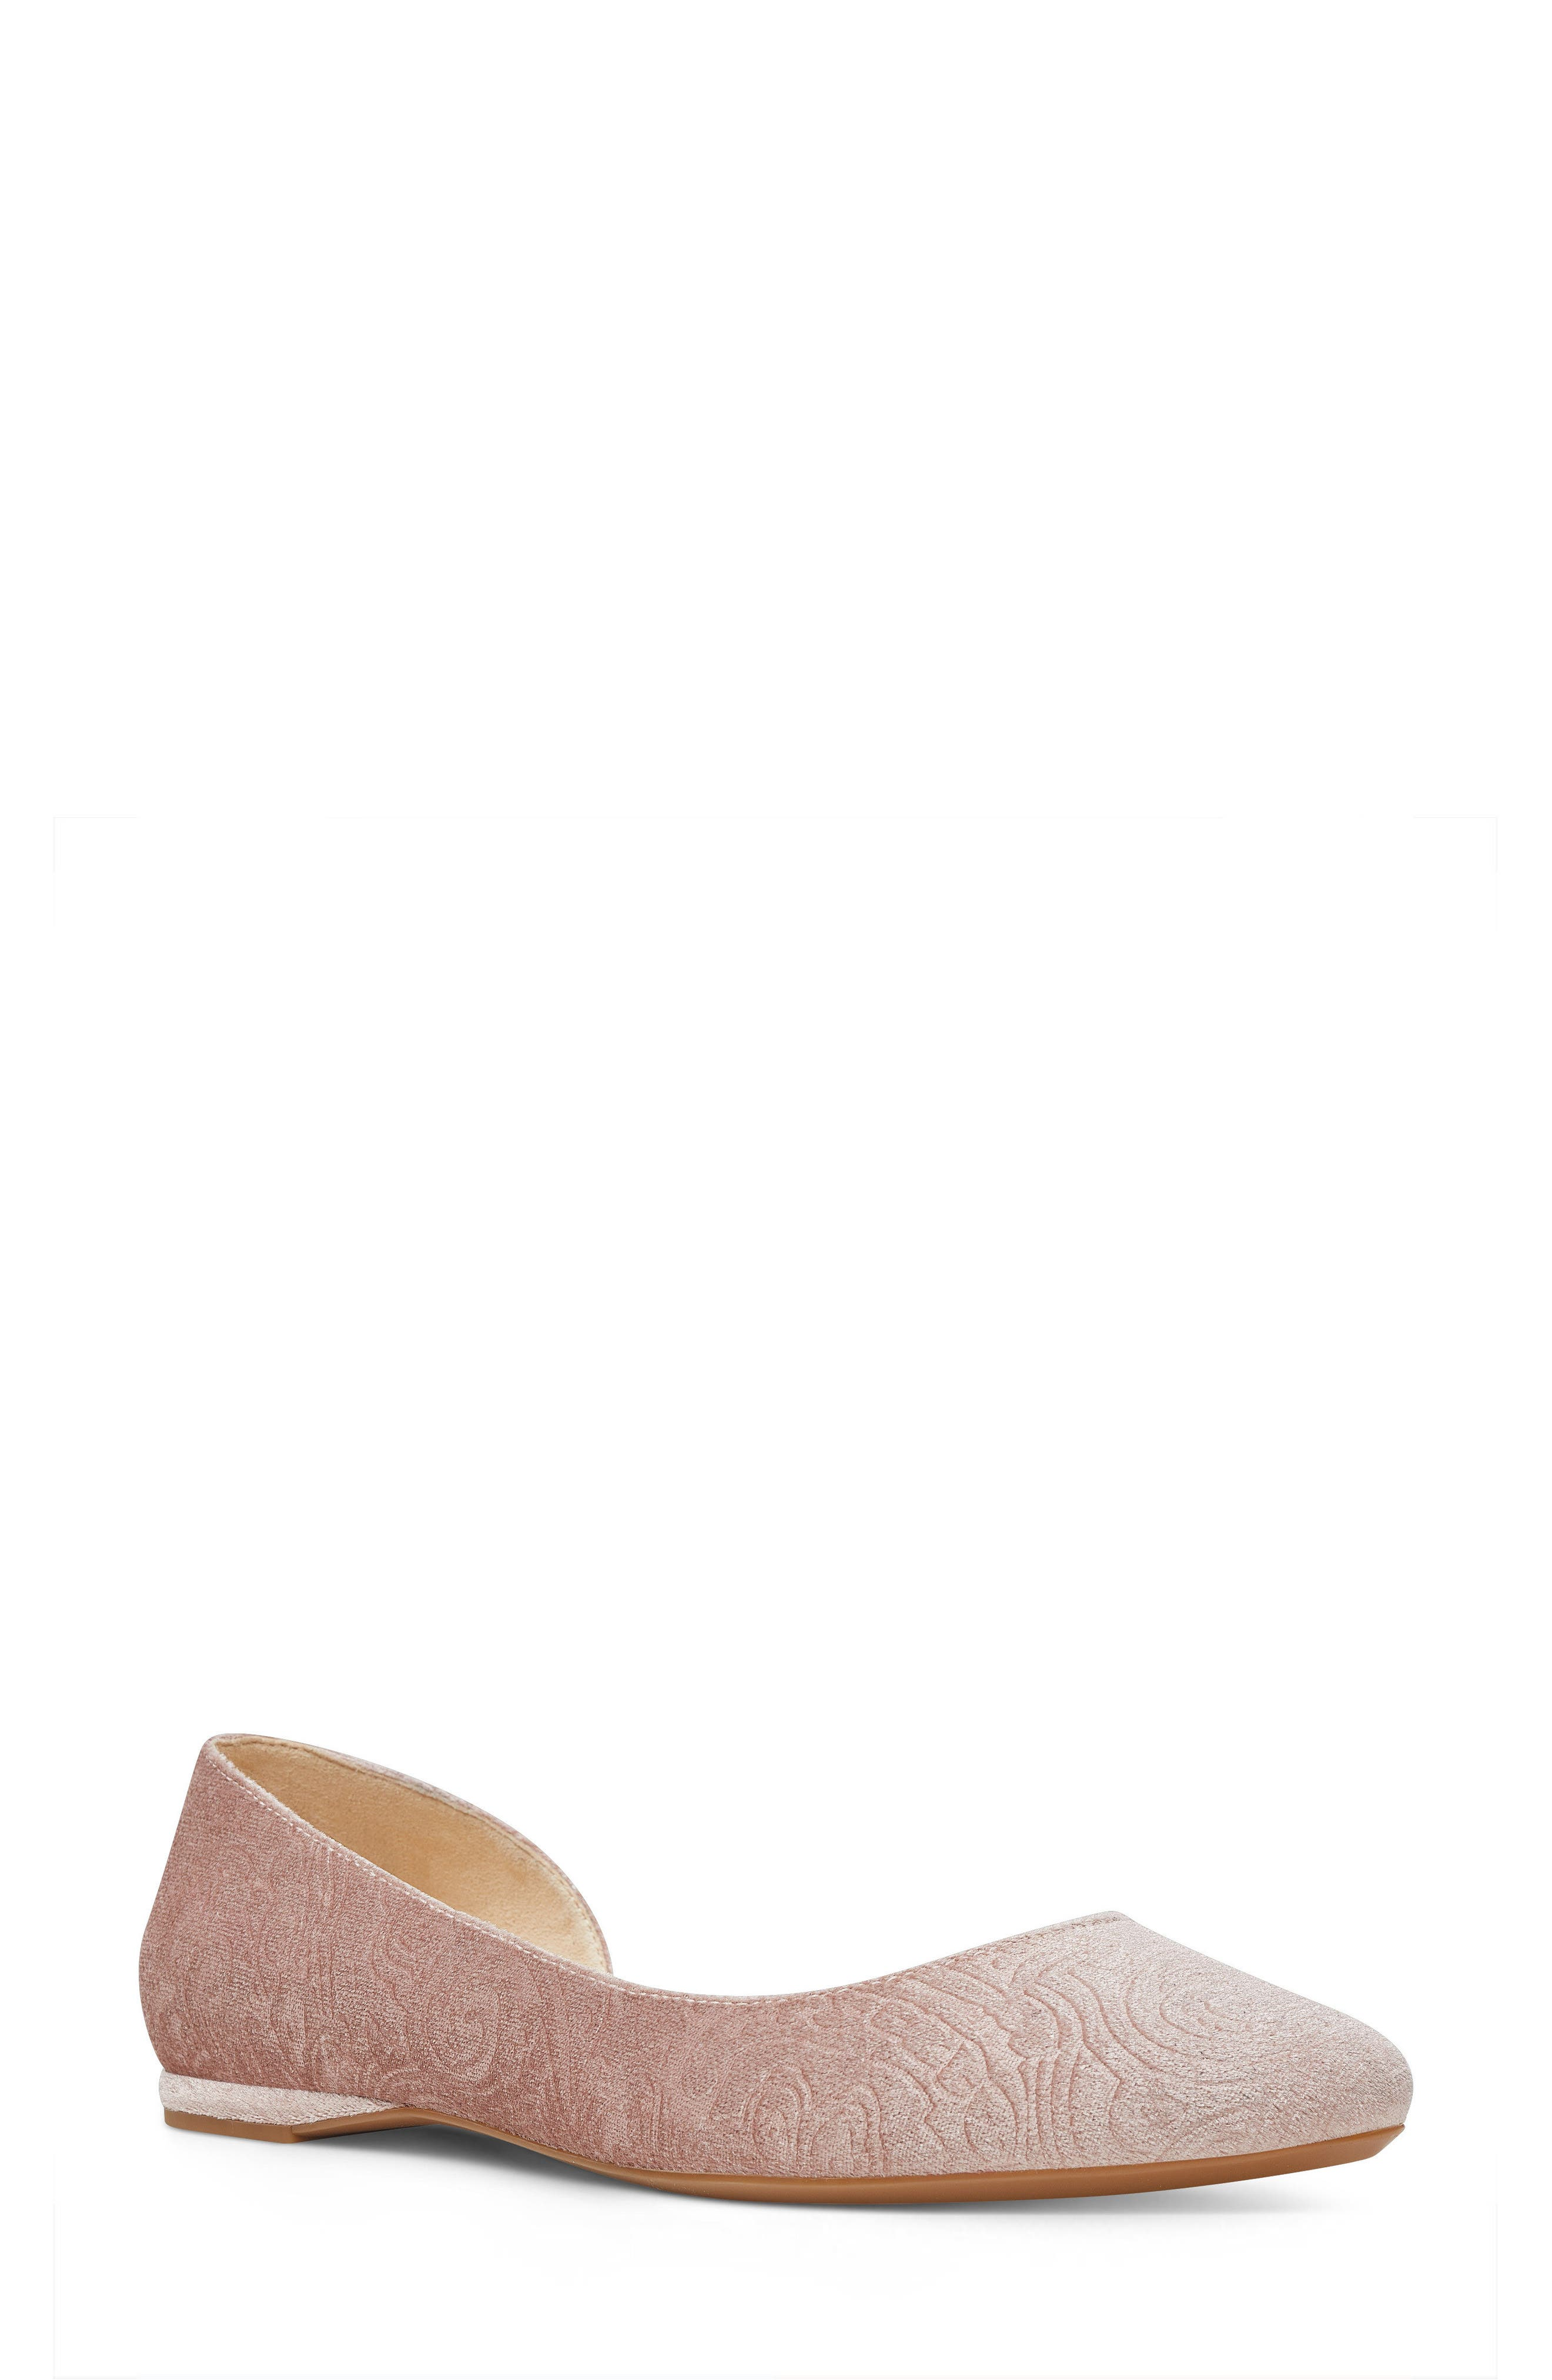 Spruce d'Orsay Flat,                         Main,                         color, Natural Fabric